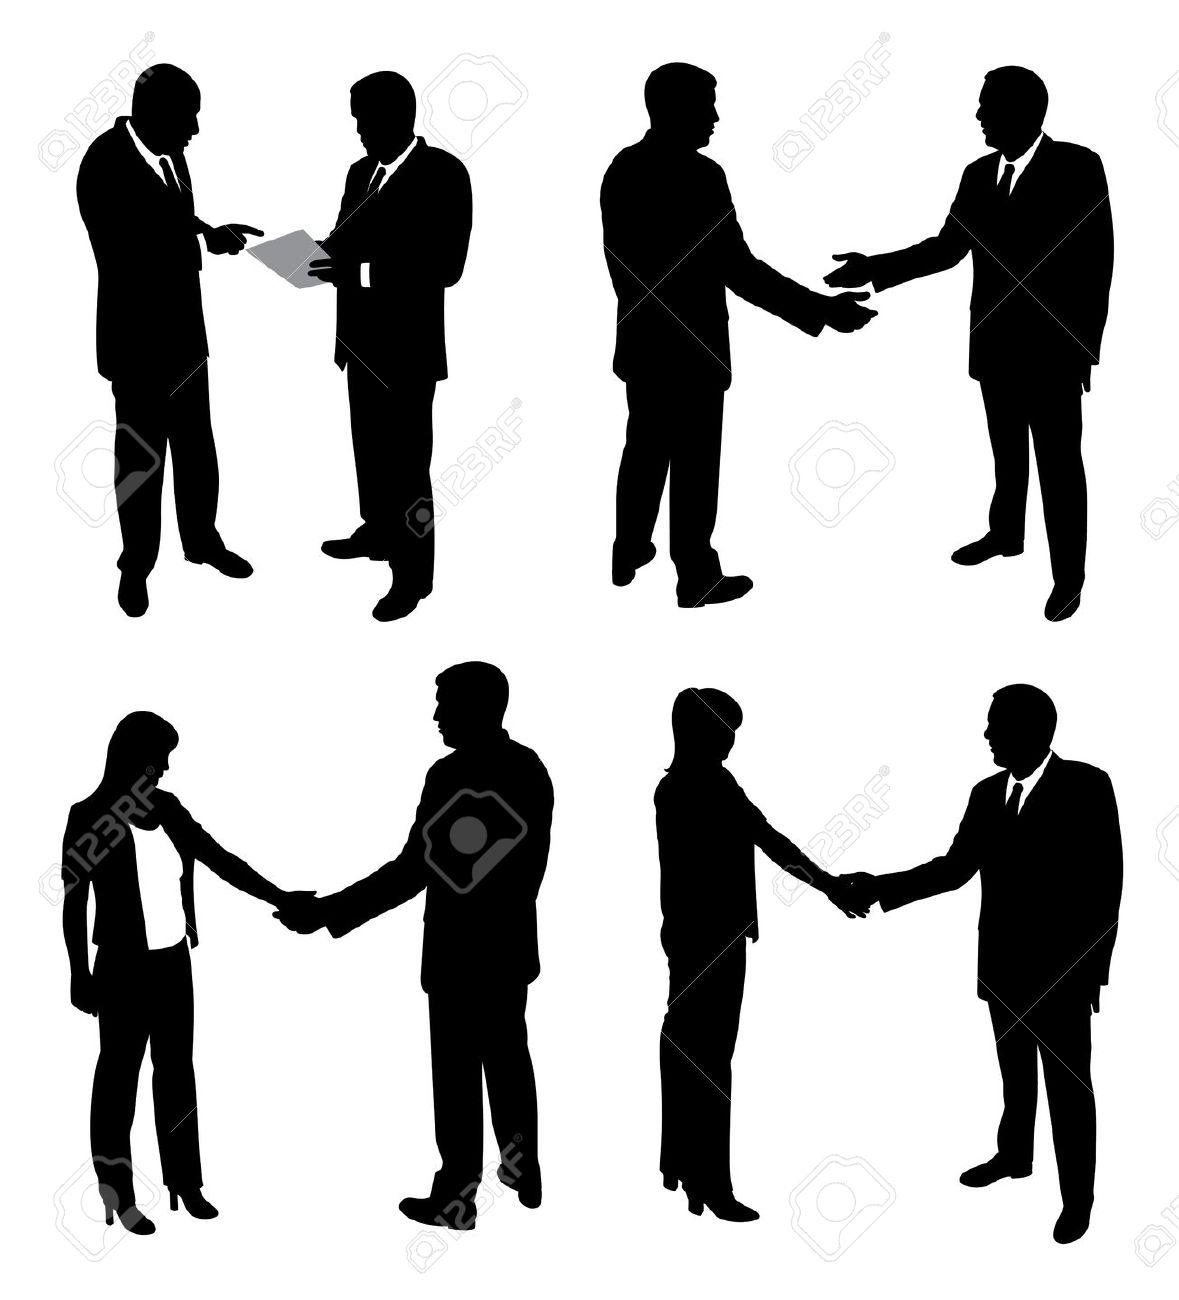 Black and white handshake line art free clip clip art.